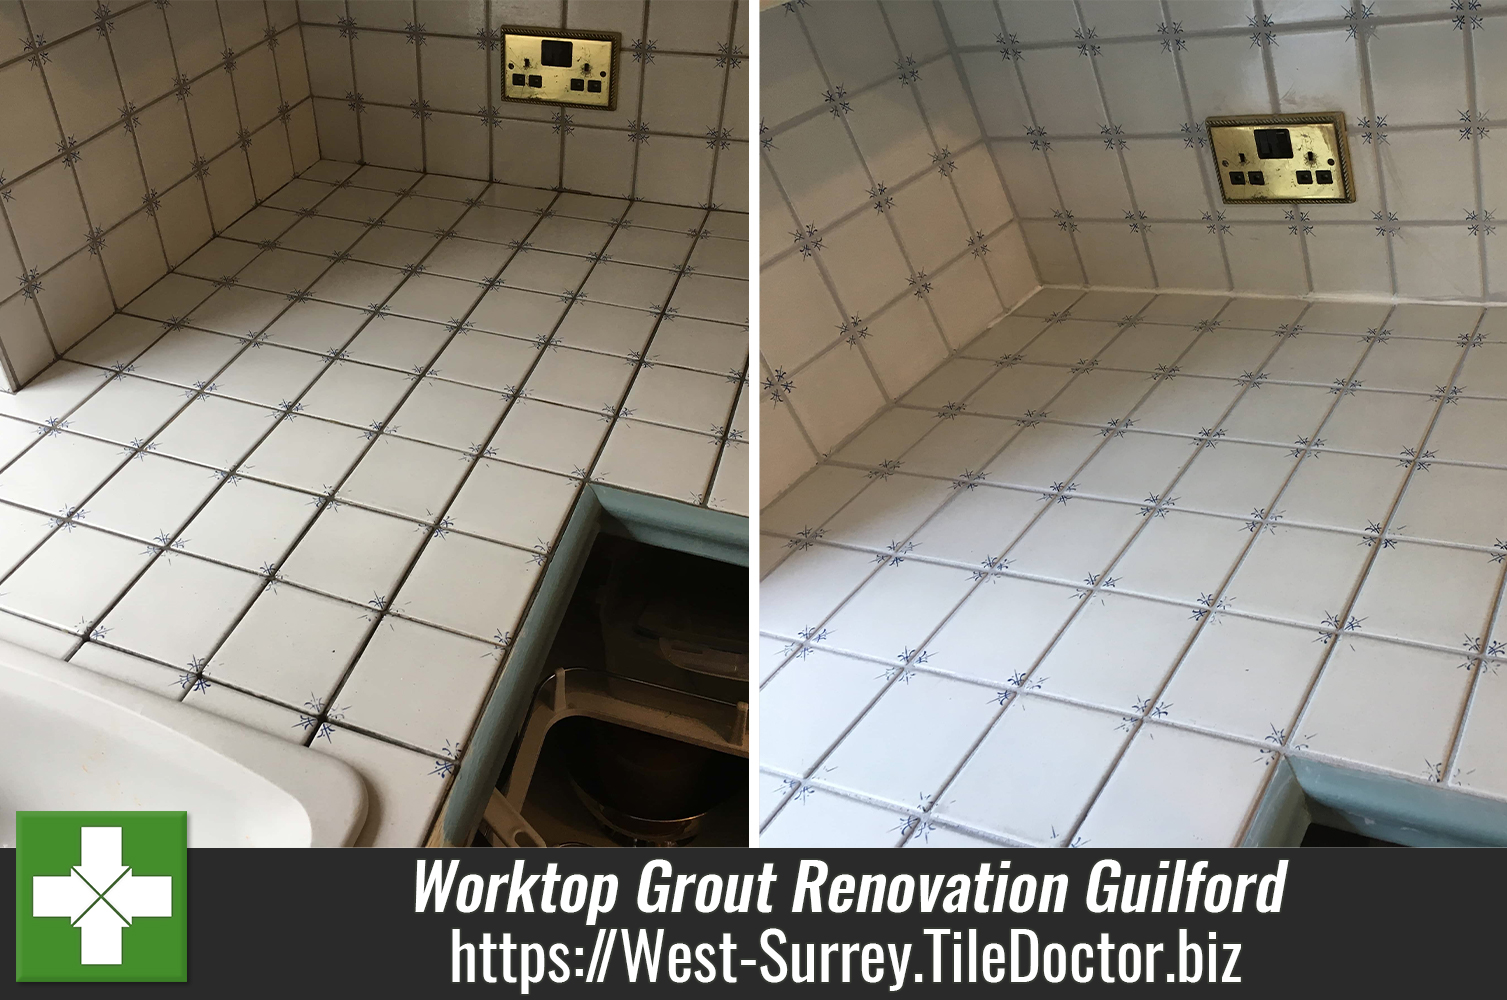 Re-colouring of Grout on Ceramic Tiled Worktops in Guildford